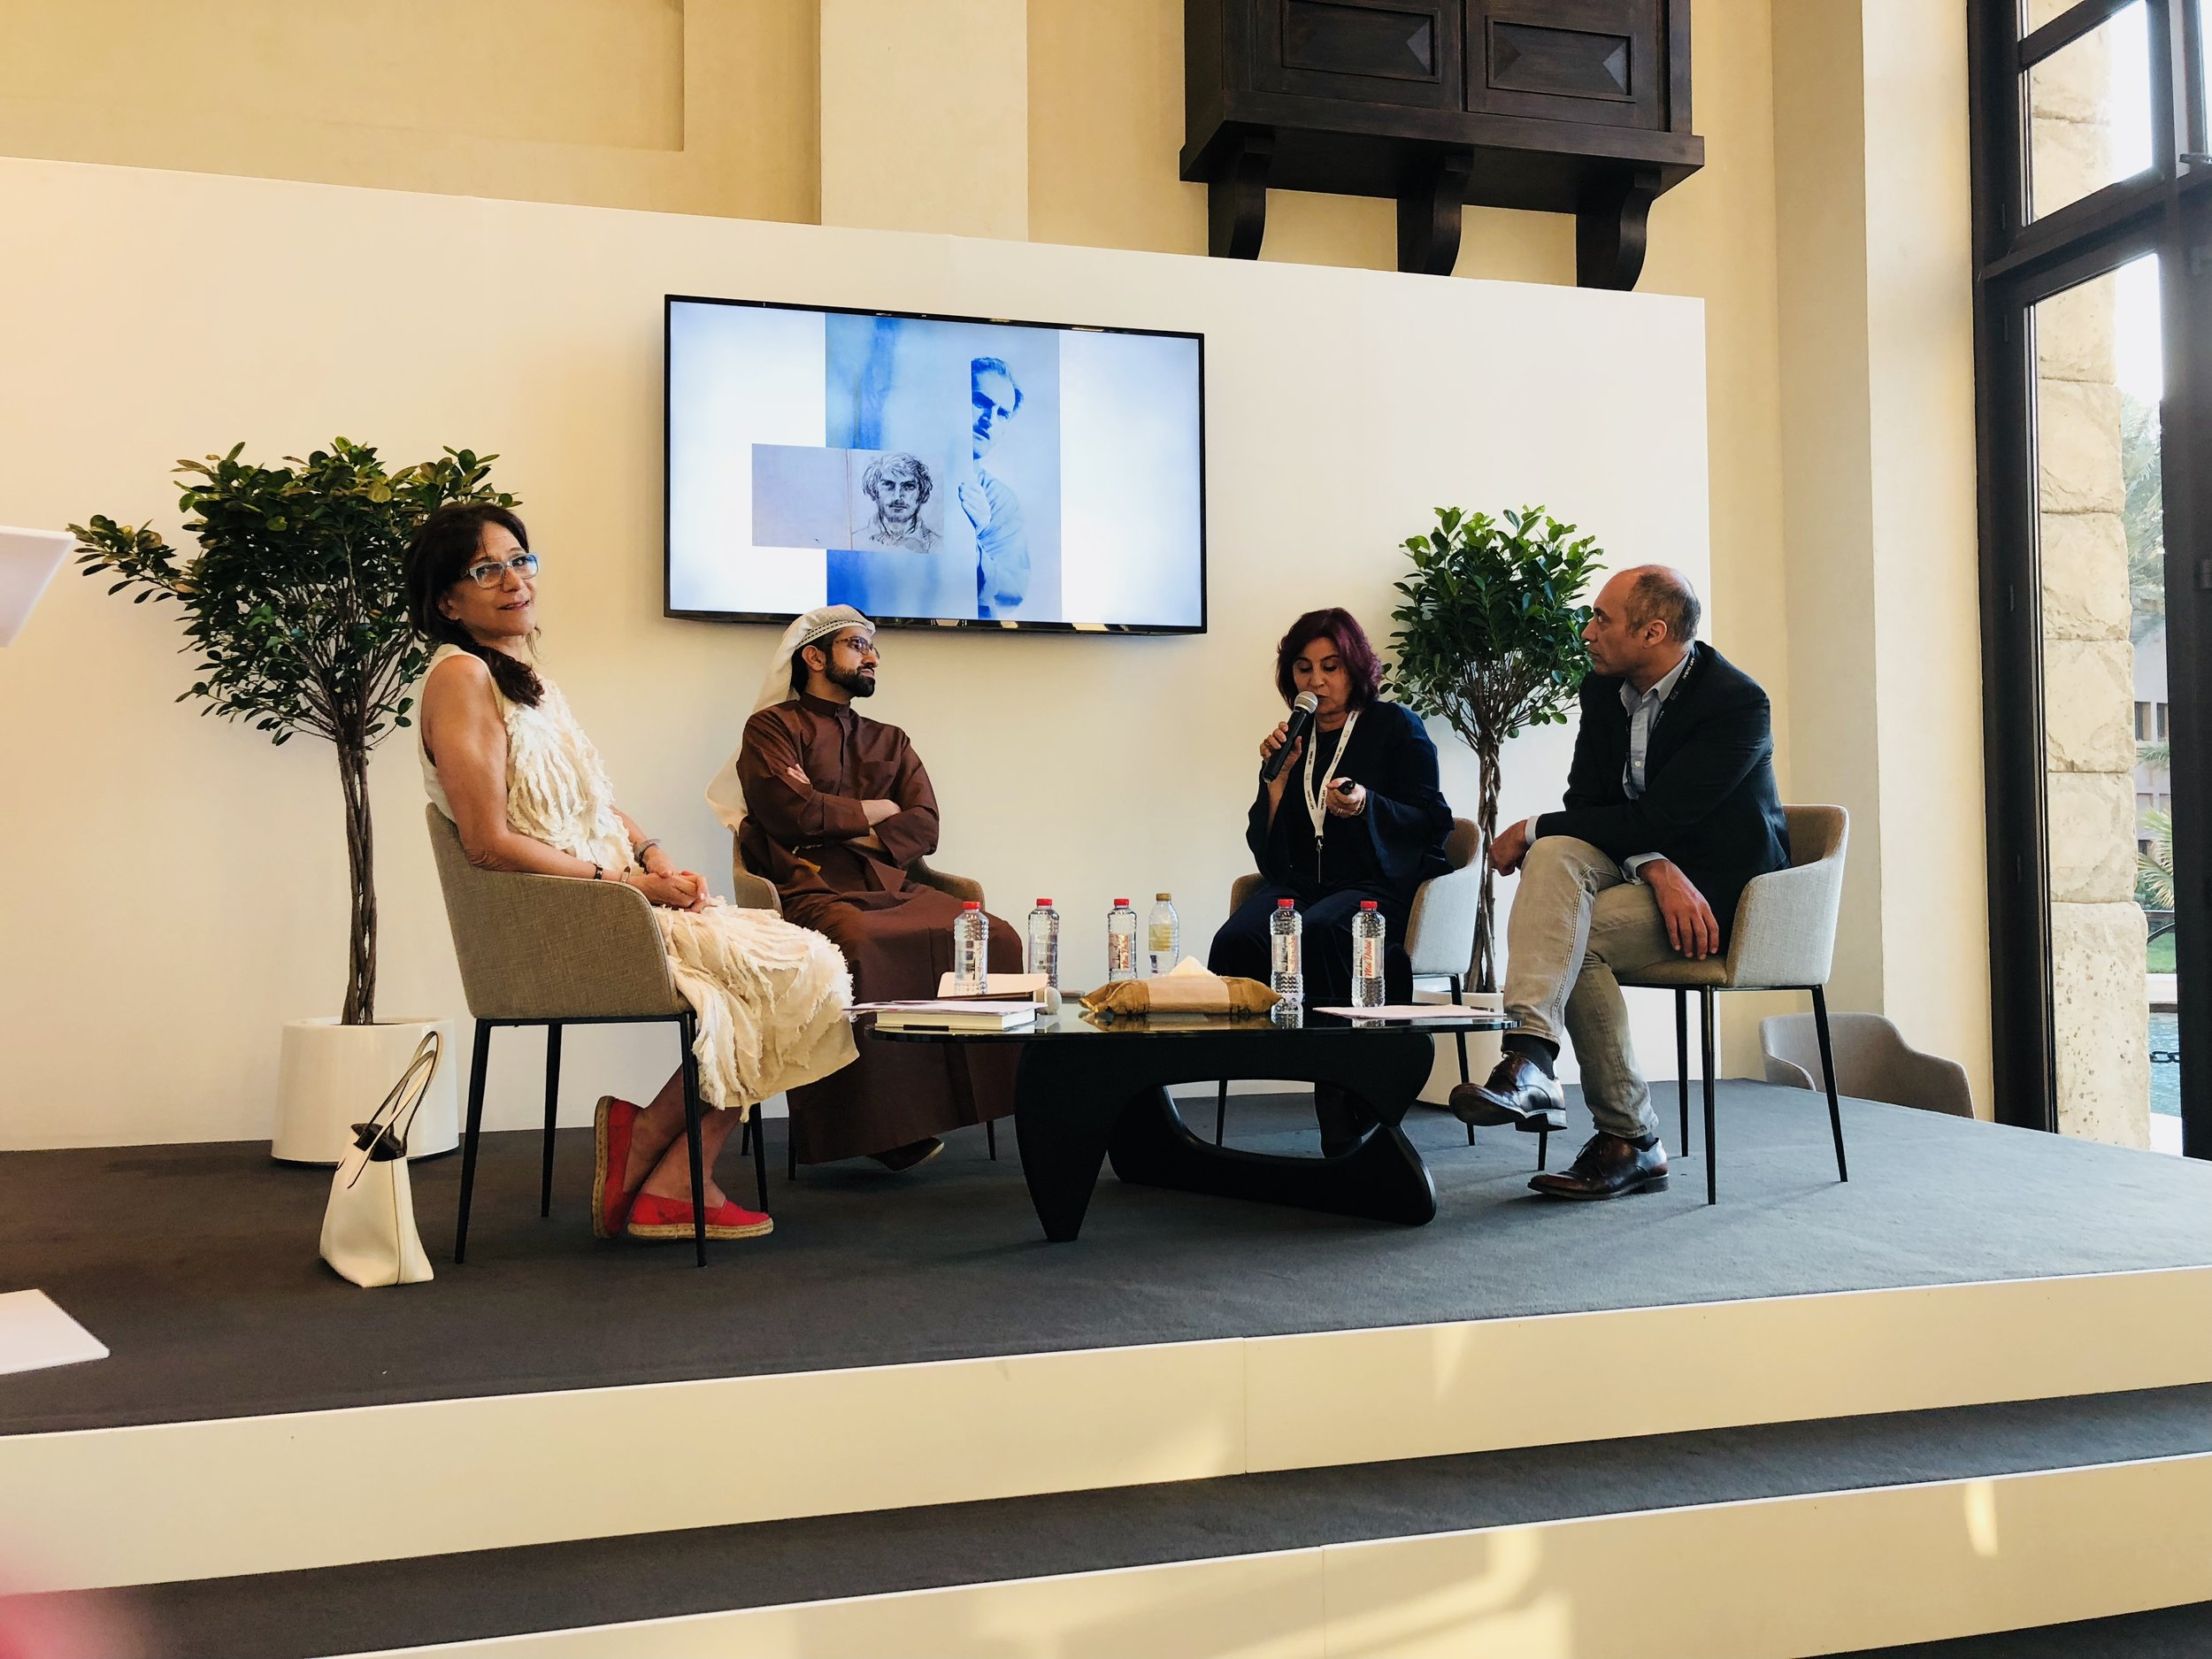 The panel of the Ali Jabiri talk; Rula Atalla, Sheikh Sultan Al Qasimi, and Suha Lalas (from left to right)